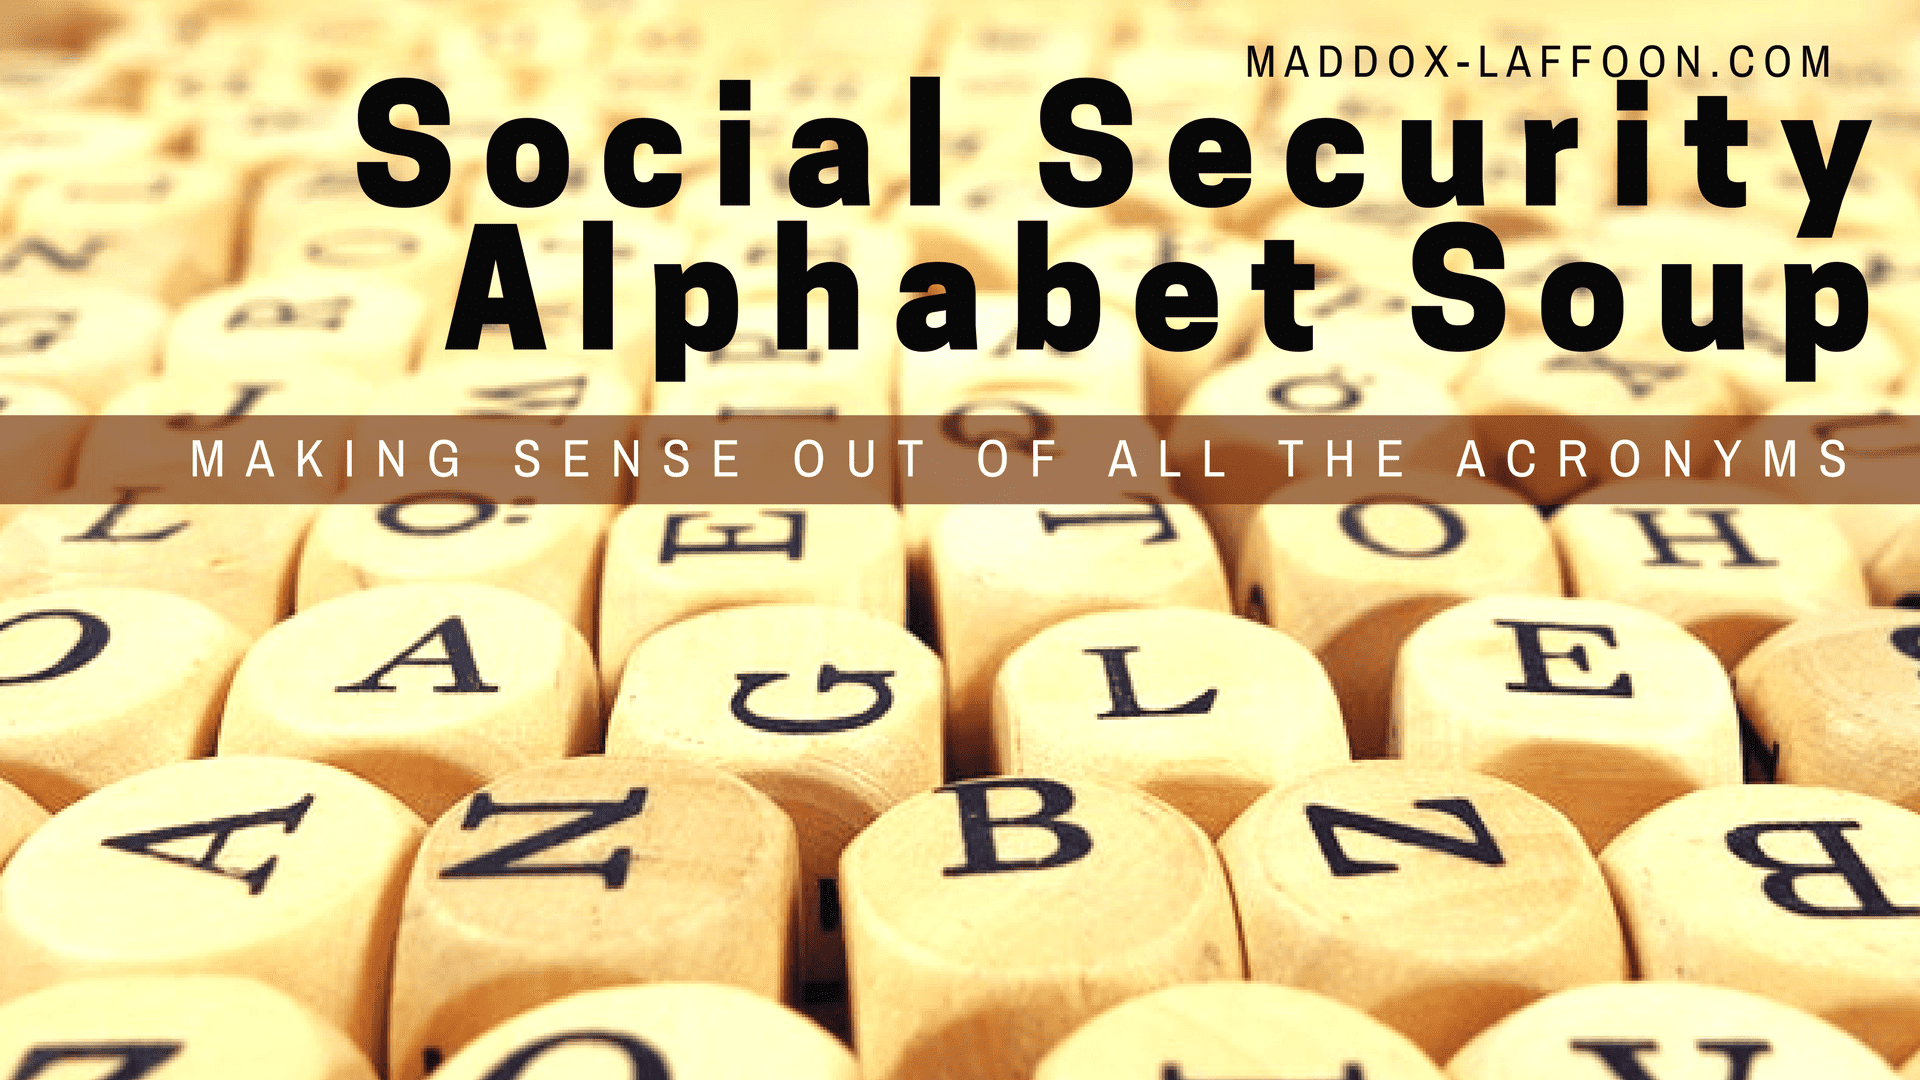 Social Security Alphabet Soup